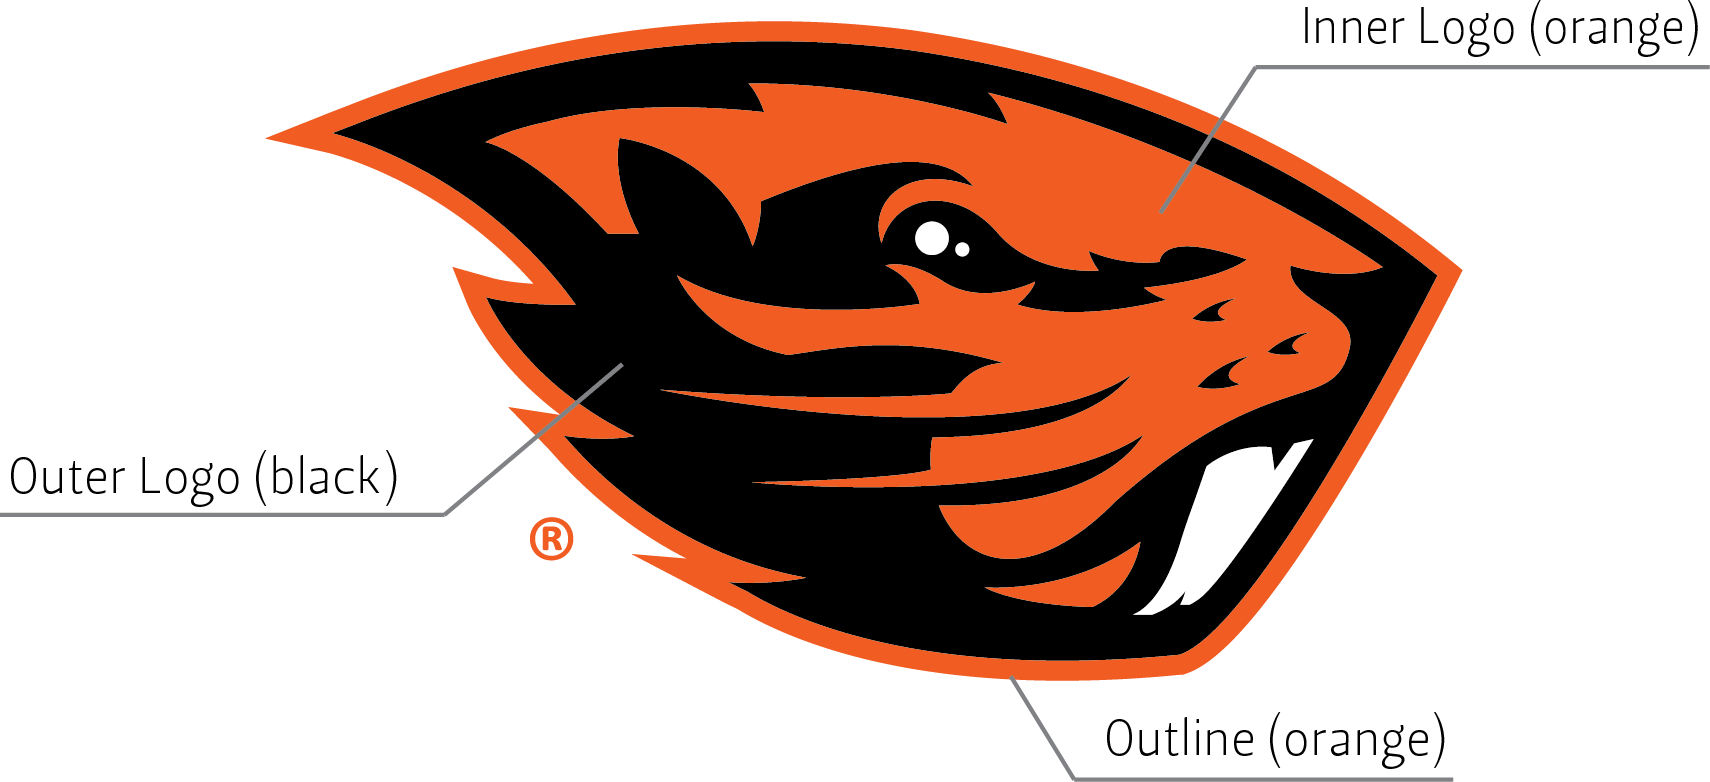 Oregon state university clipart png library download Oregon state university logo images clipart images gallery for free ... png library download